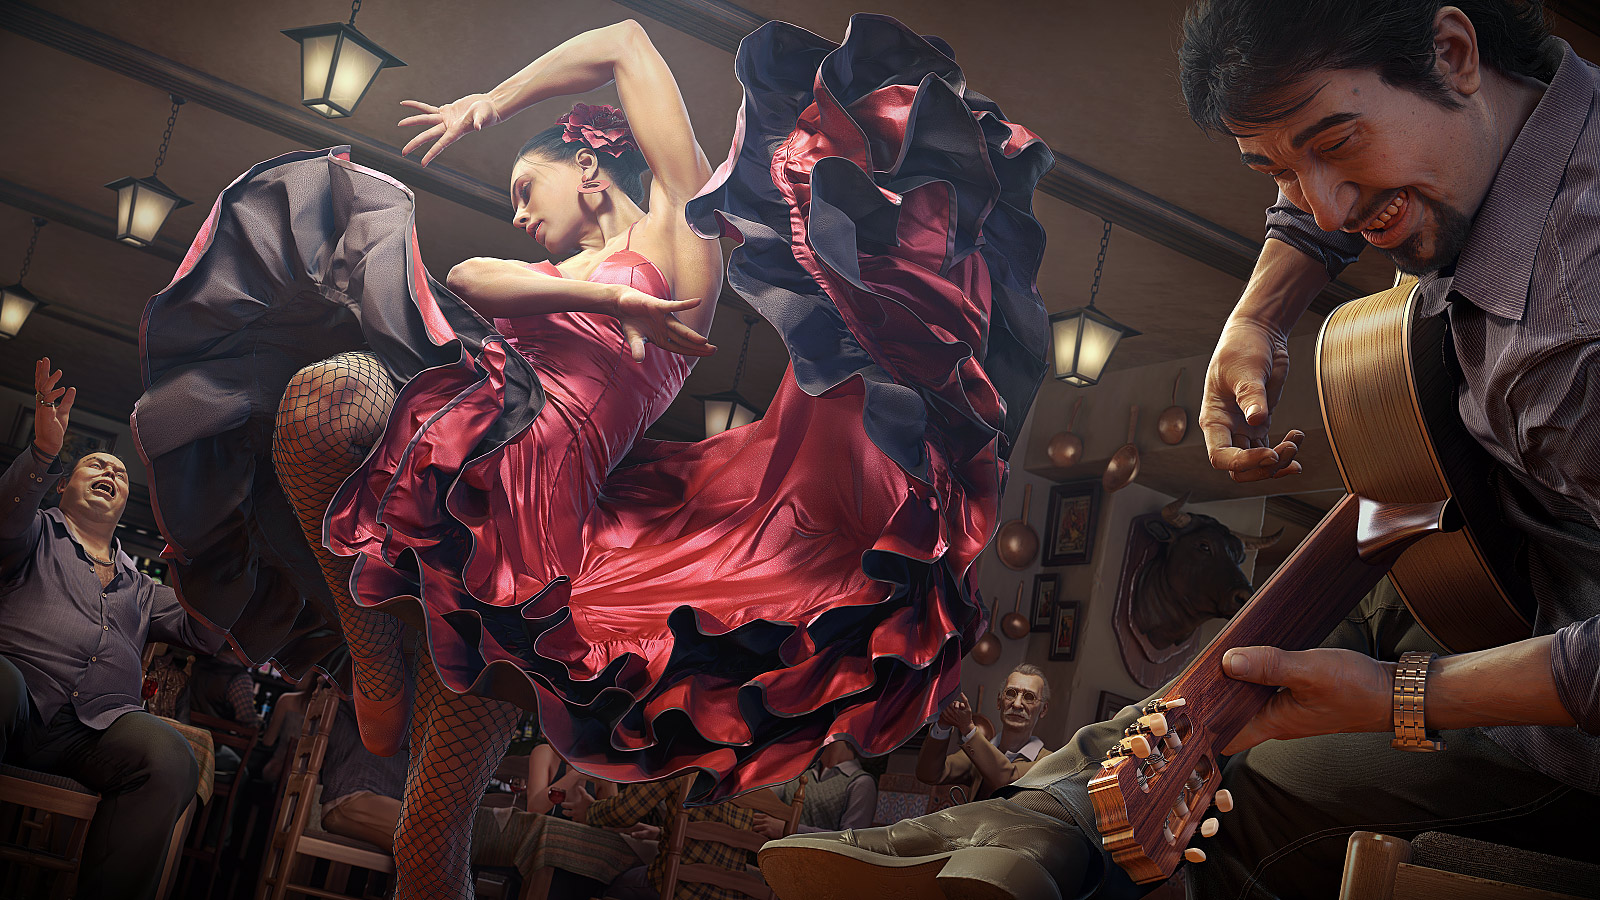 Flamenco_Final01.jpg